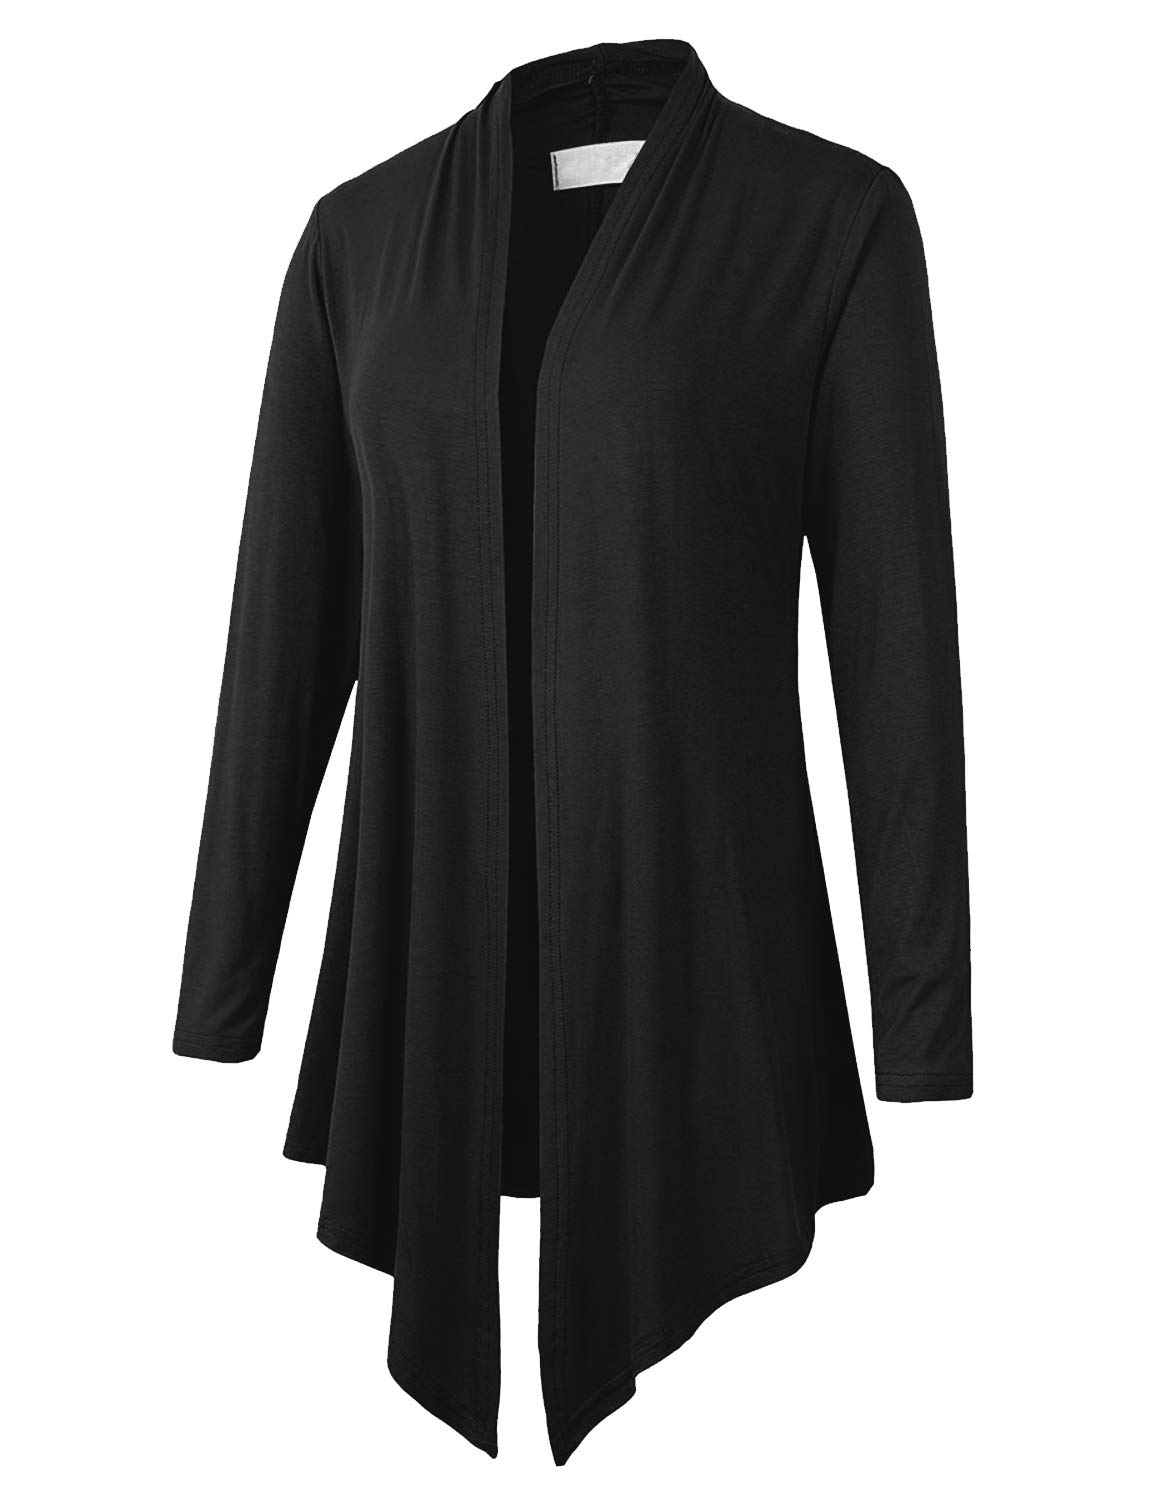 Eanklosco Women Open Front Cardigan Plus Size Drape Long Sleeve Coat (Black, XXL)